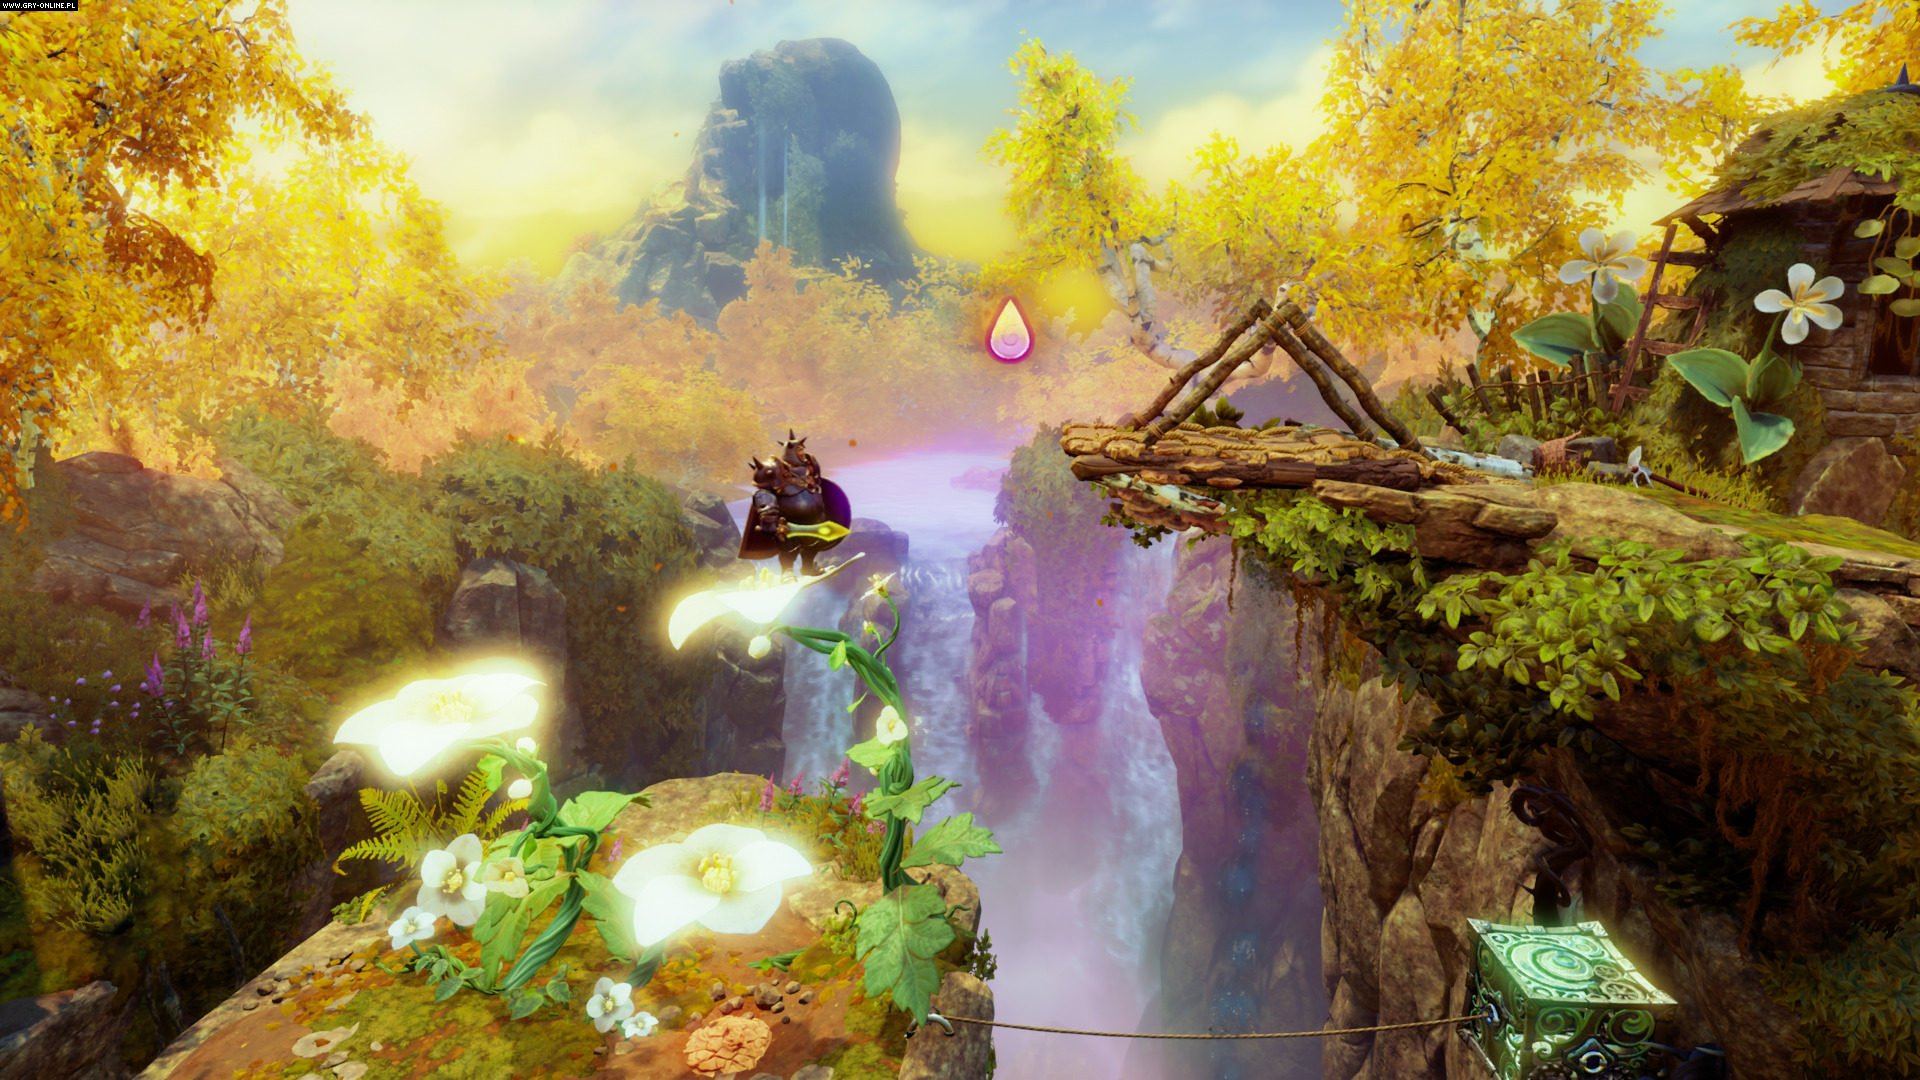 Trine 4: The Nightmare Prince PC, PS4, XONE, Switch Games Image 7/45, Frozenbyte, Modus Games